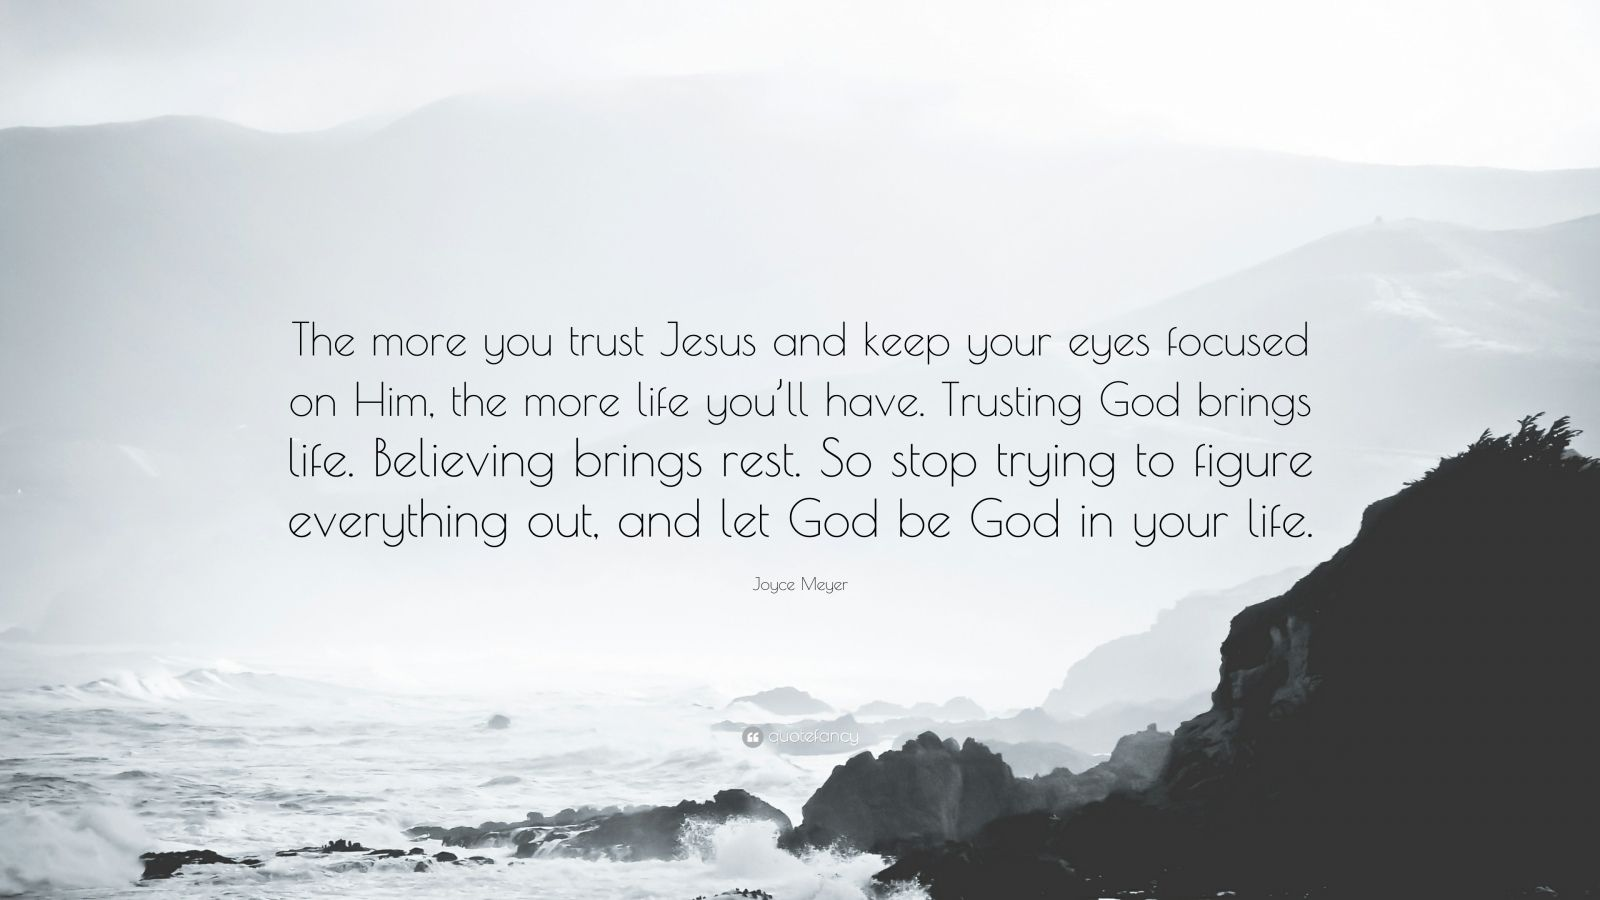 "Joyce Meyer Quote: ""The more you trust Jesus and keep your eyes focused on Him, the more life you'll have. Trusting God brings life. Believing brings rest. So stop trying to figure everything out, and let God be God in your life."""